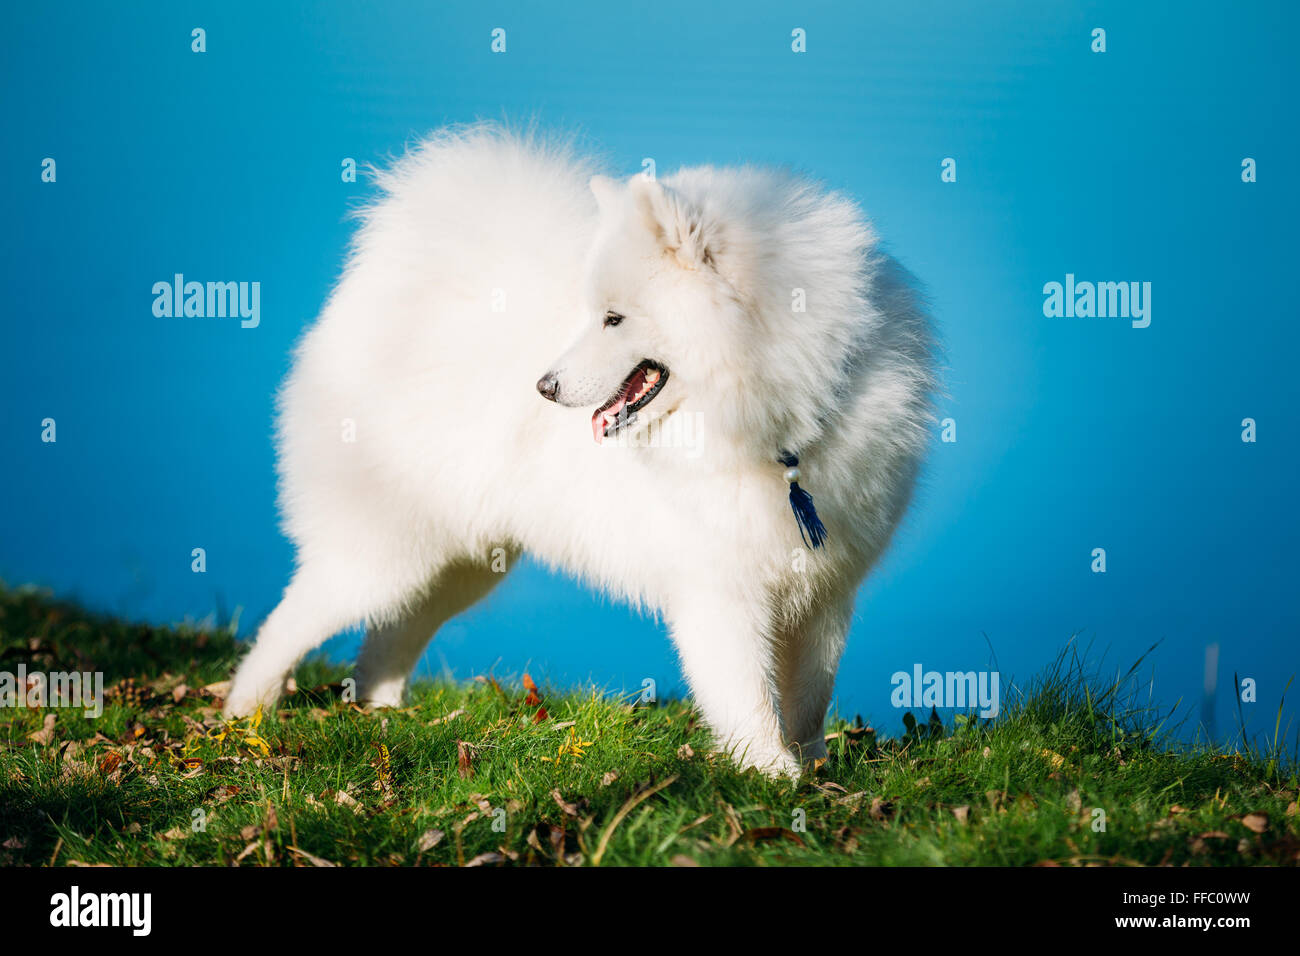 Happy White Samoyed Dog Outdoor in park on background of river - Stock Image